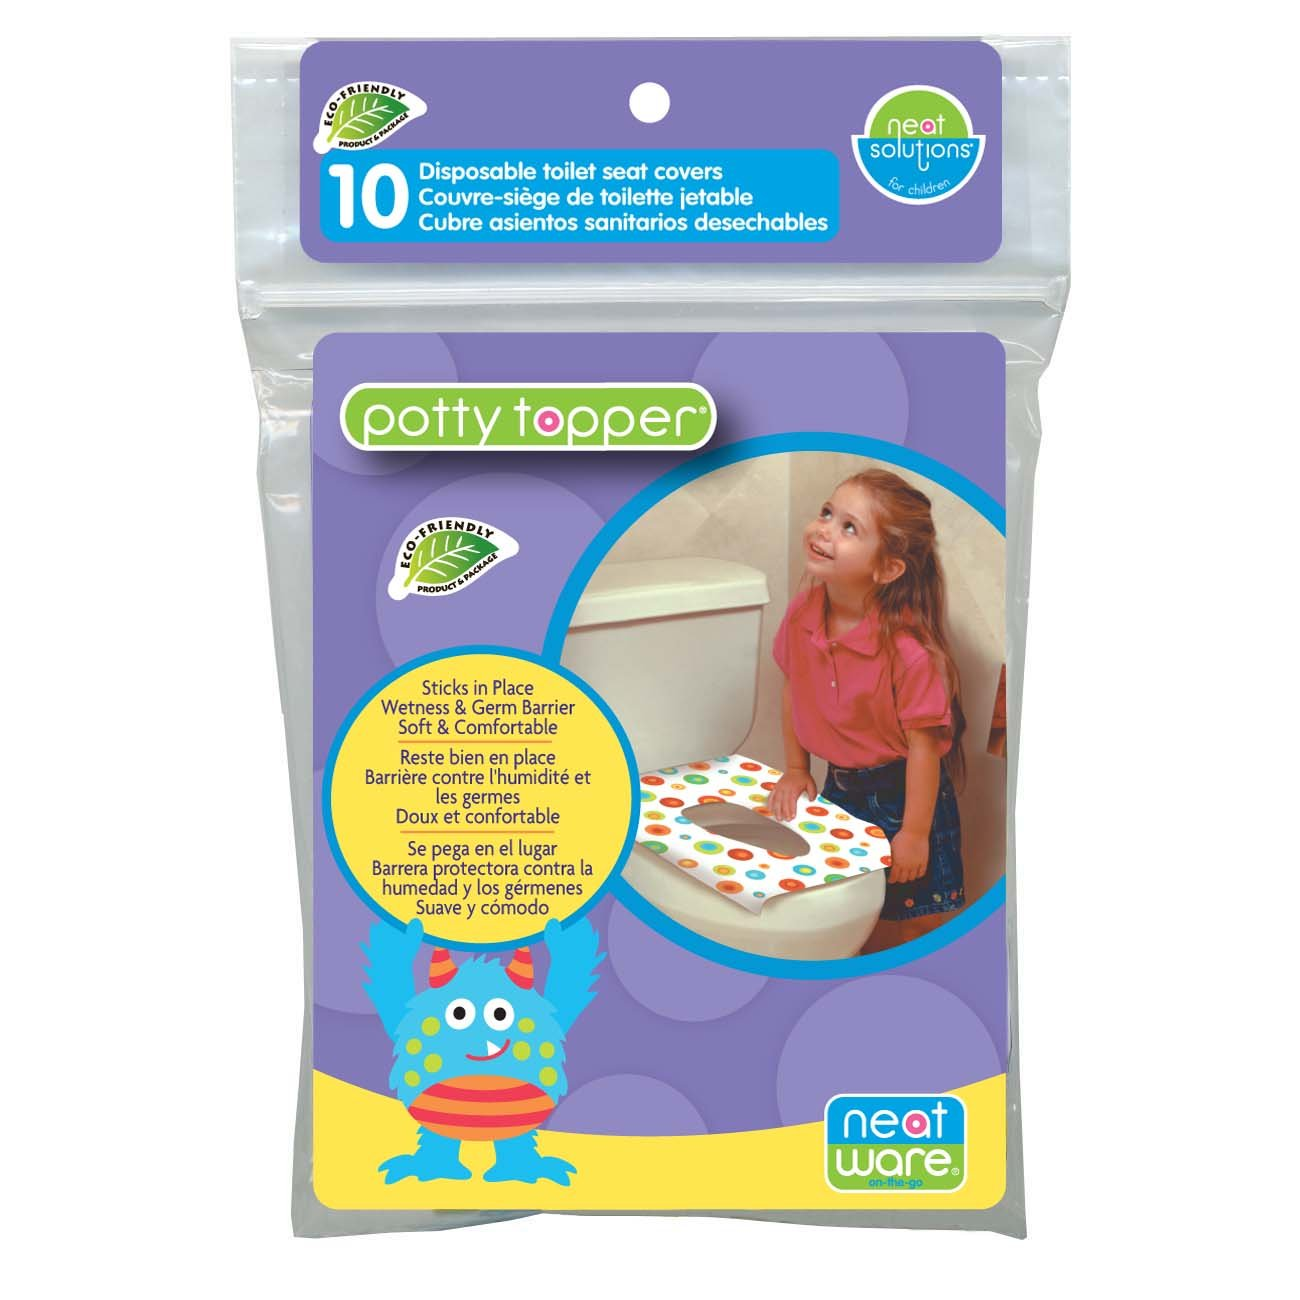 Amazon.com : Neat Solutions Neat-Ware Potty Topper, 40-Count : Toilet Training Potties : Baby